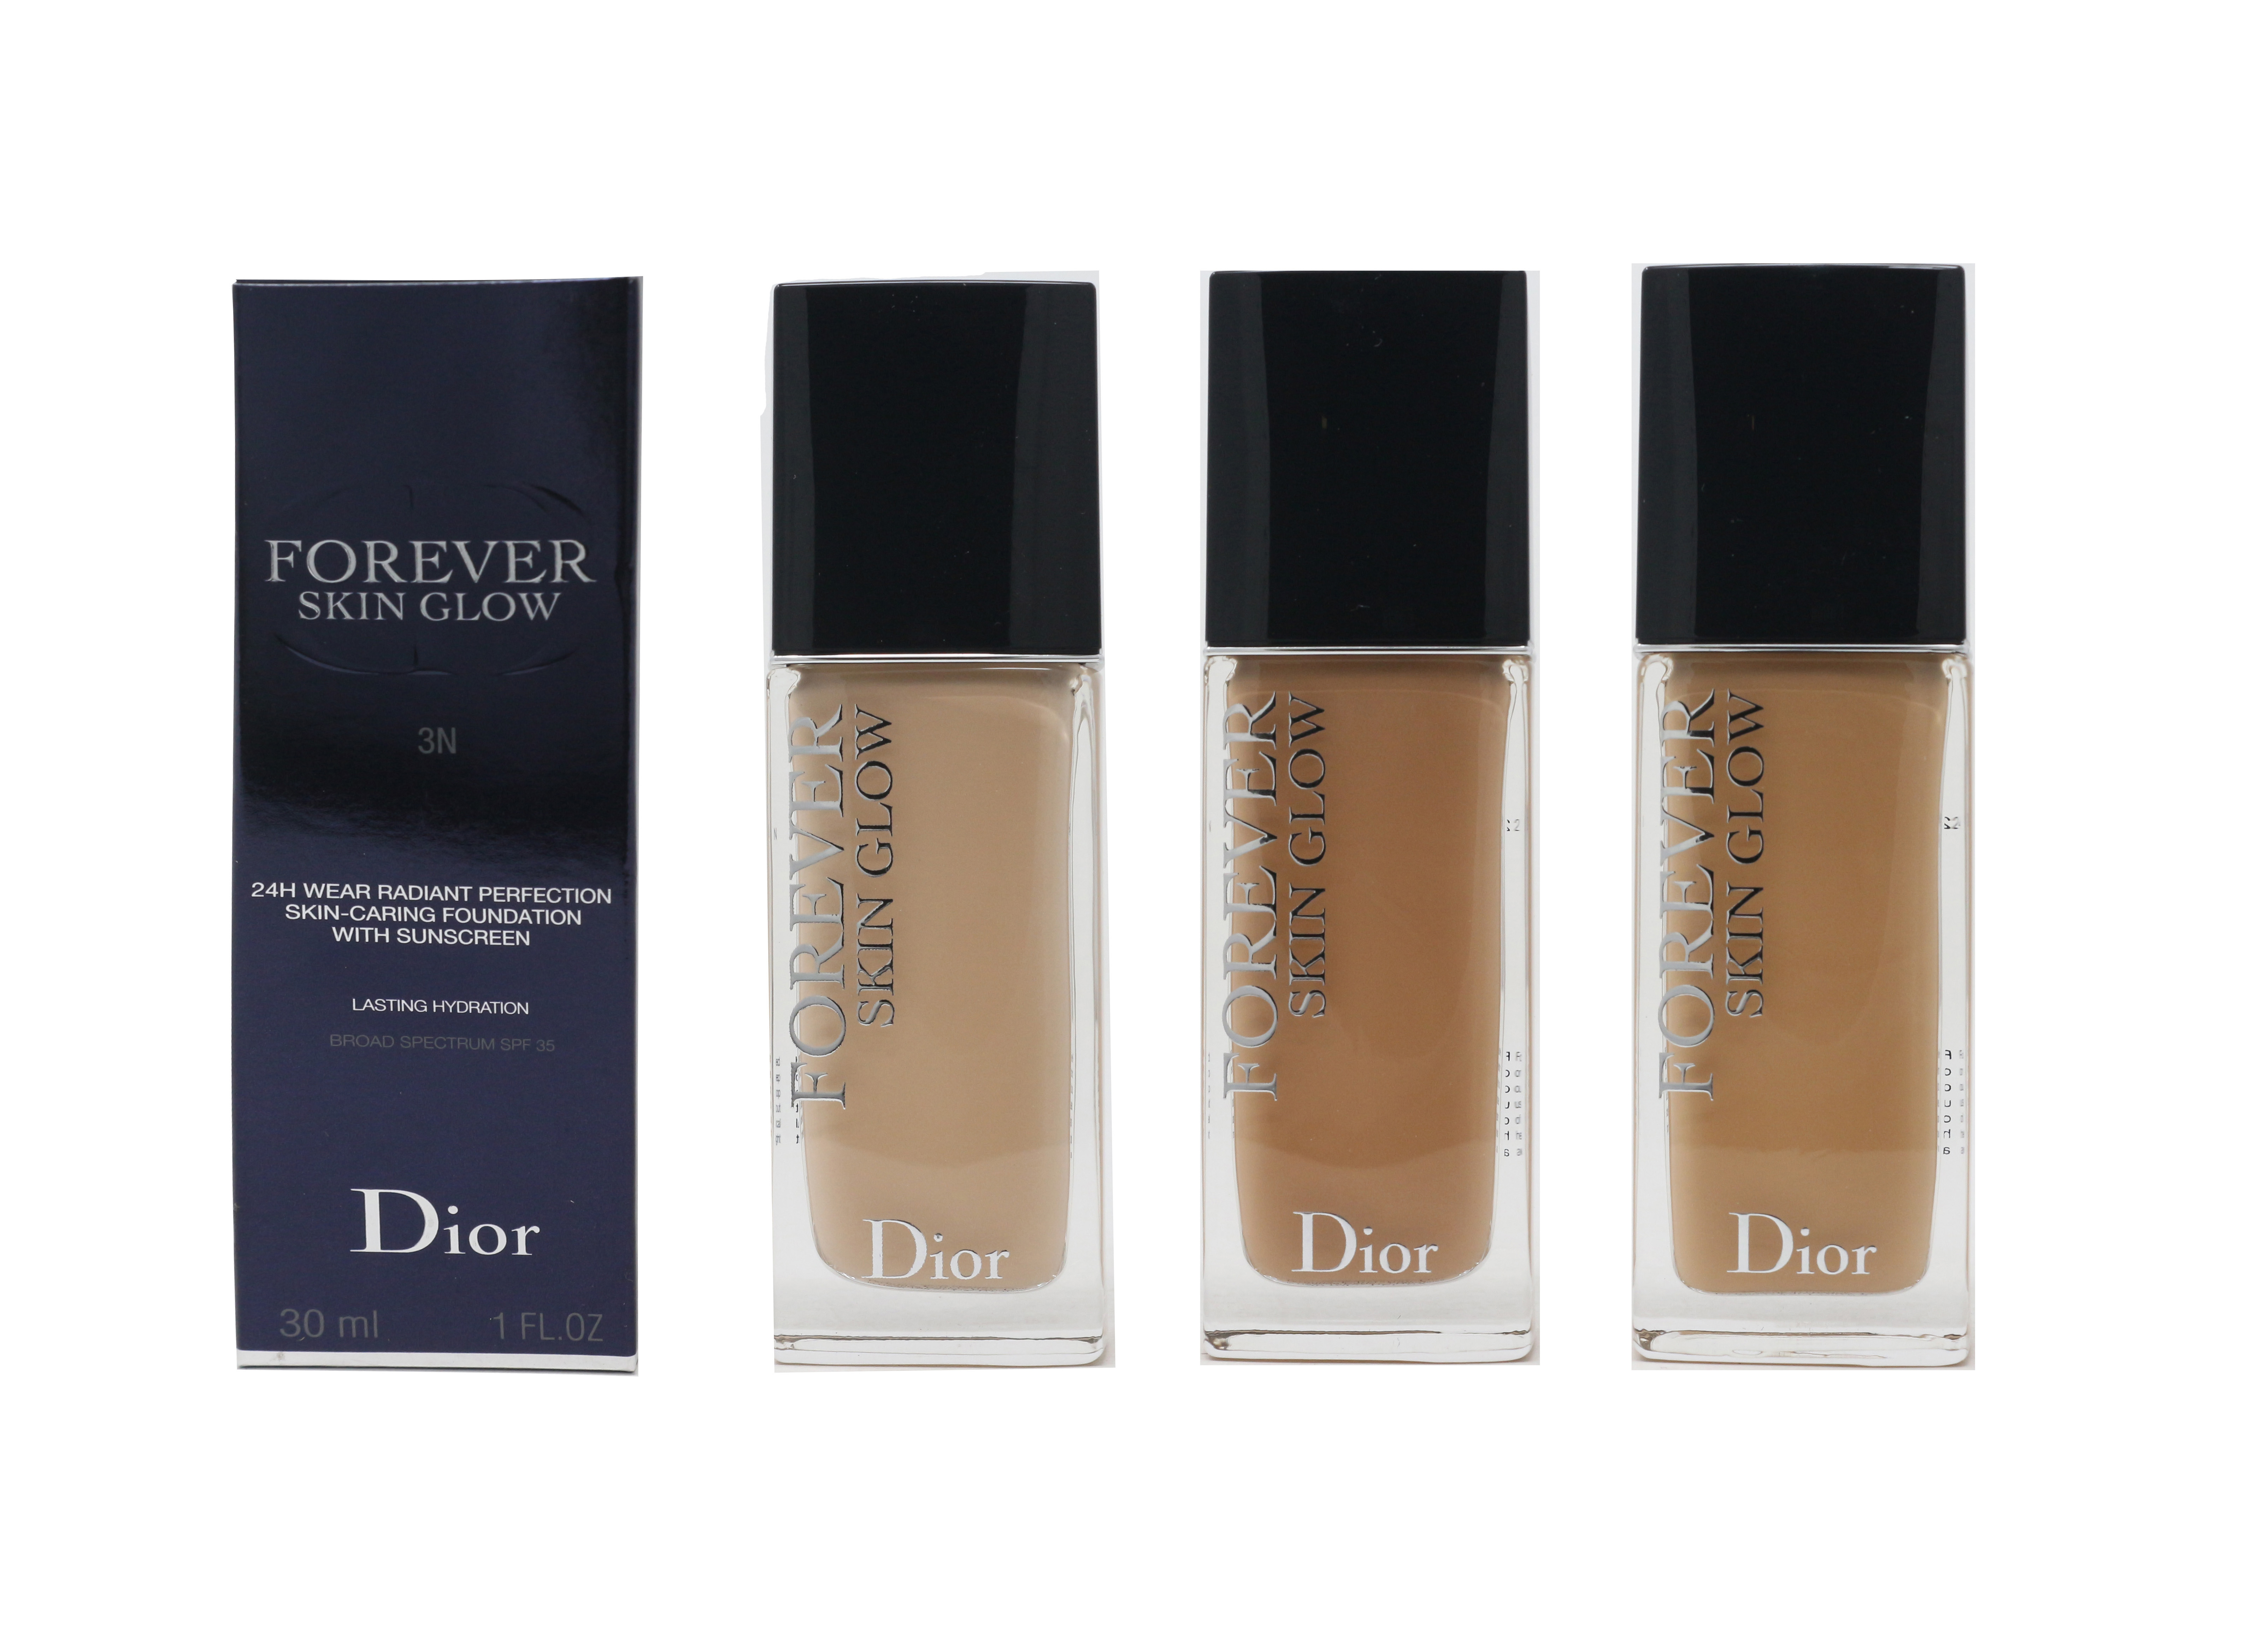 05f2e32d50 Details about Dior For Ever Skin Glow Broad Spectrum SPF 35 1oz New In  Box(Choose Your Shade)